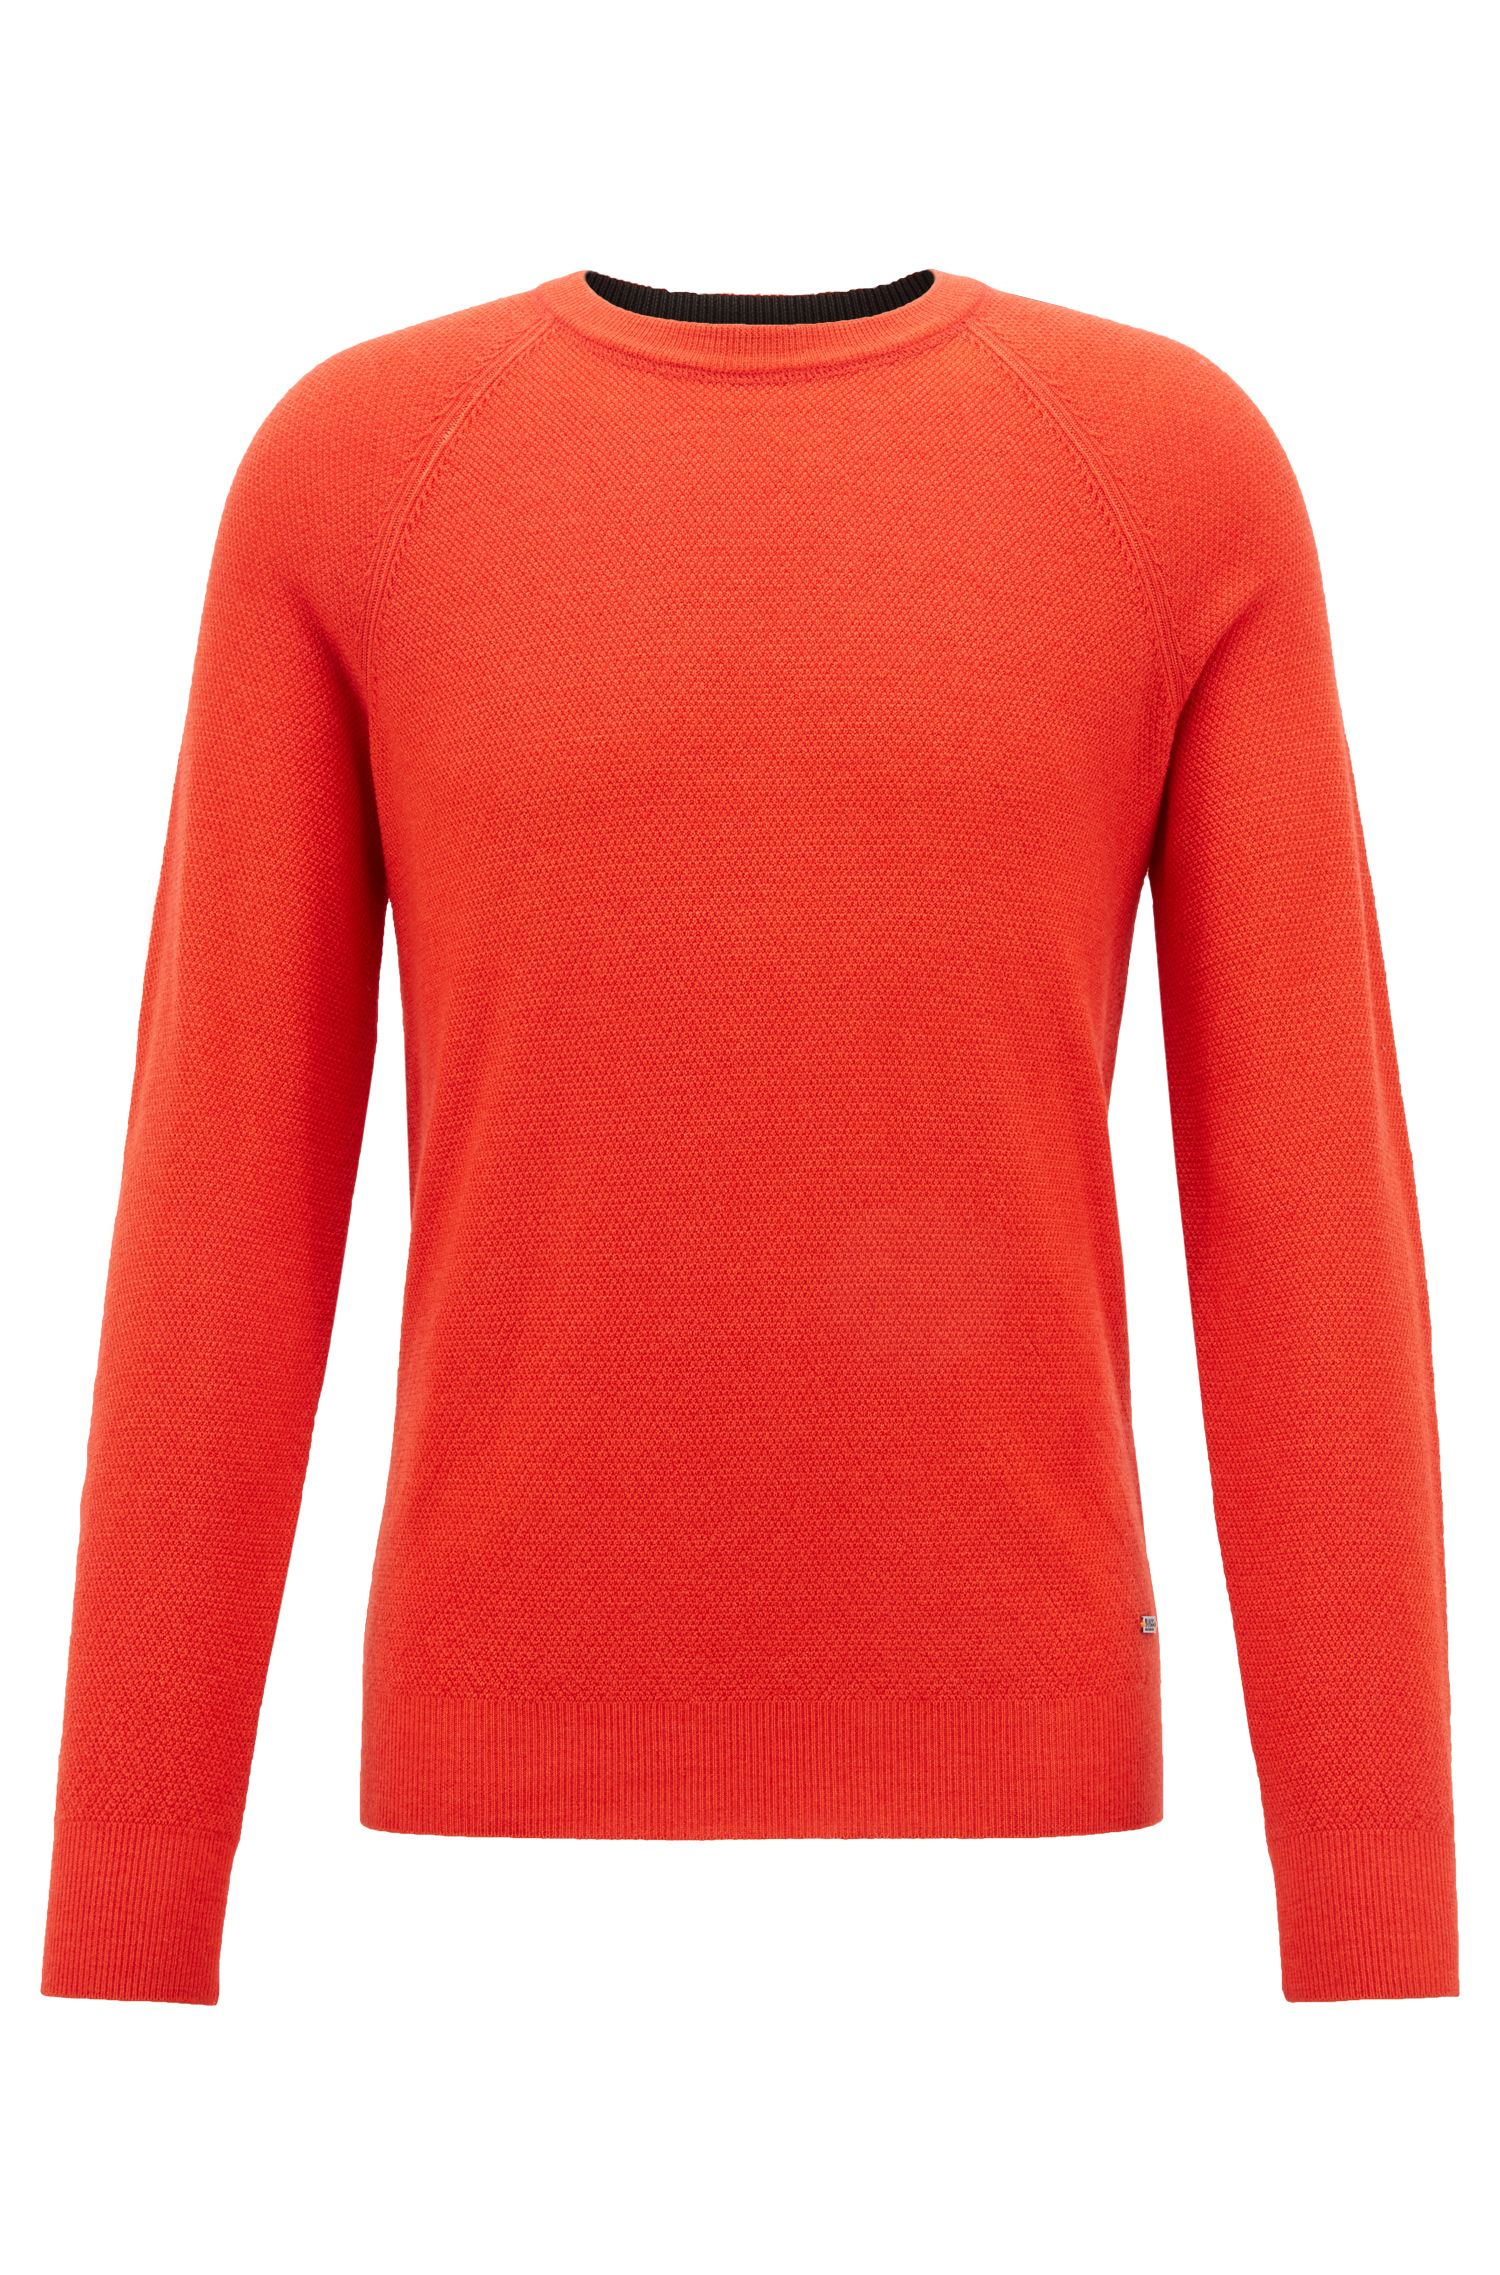 Crew-neck sweater in lightweight merino wool piqué, Open Red